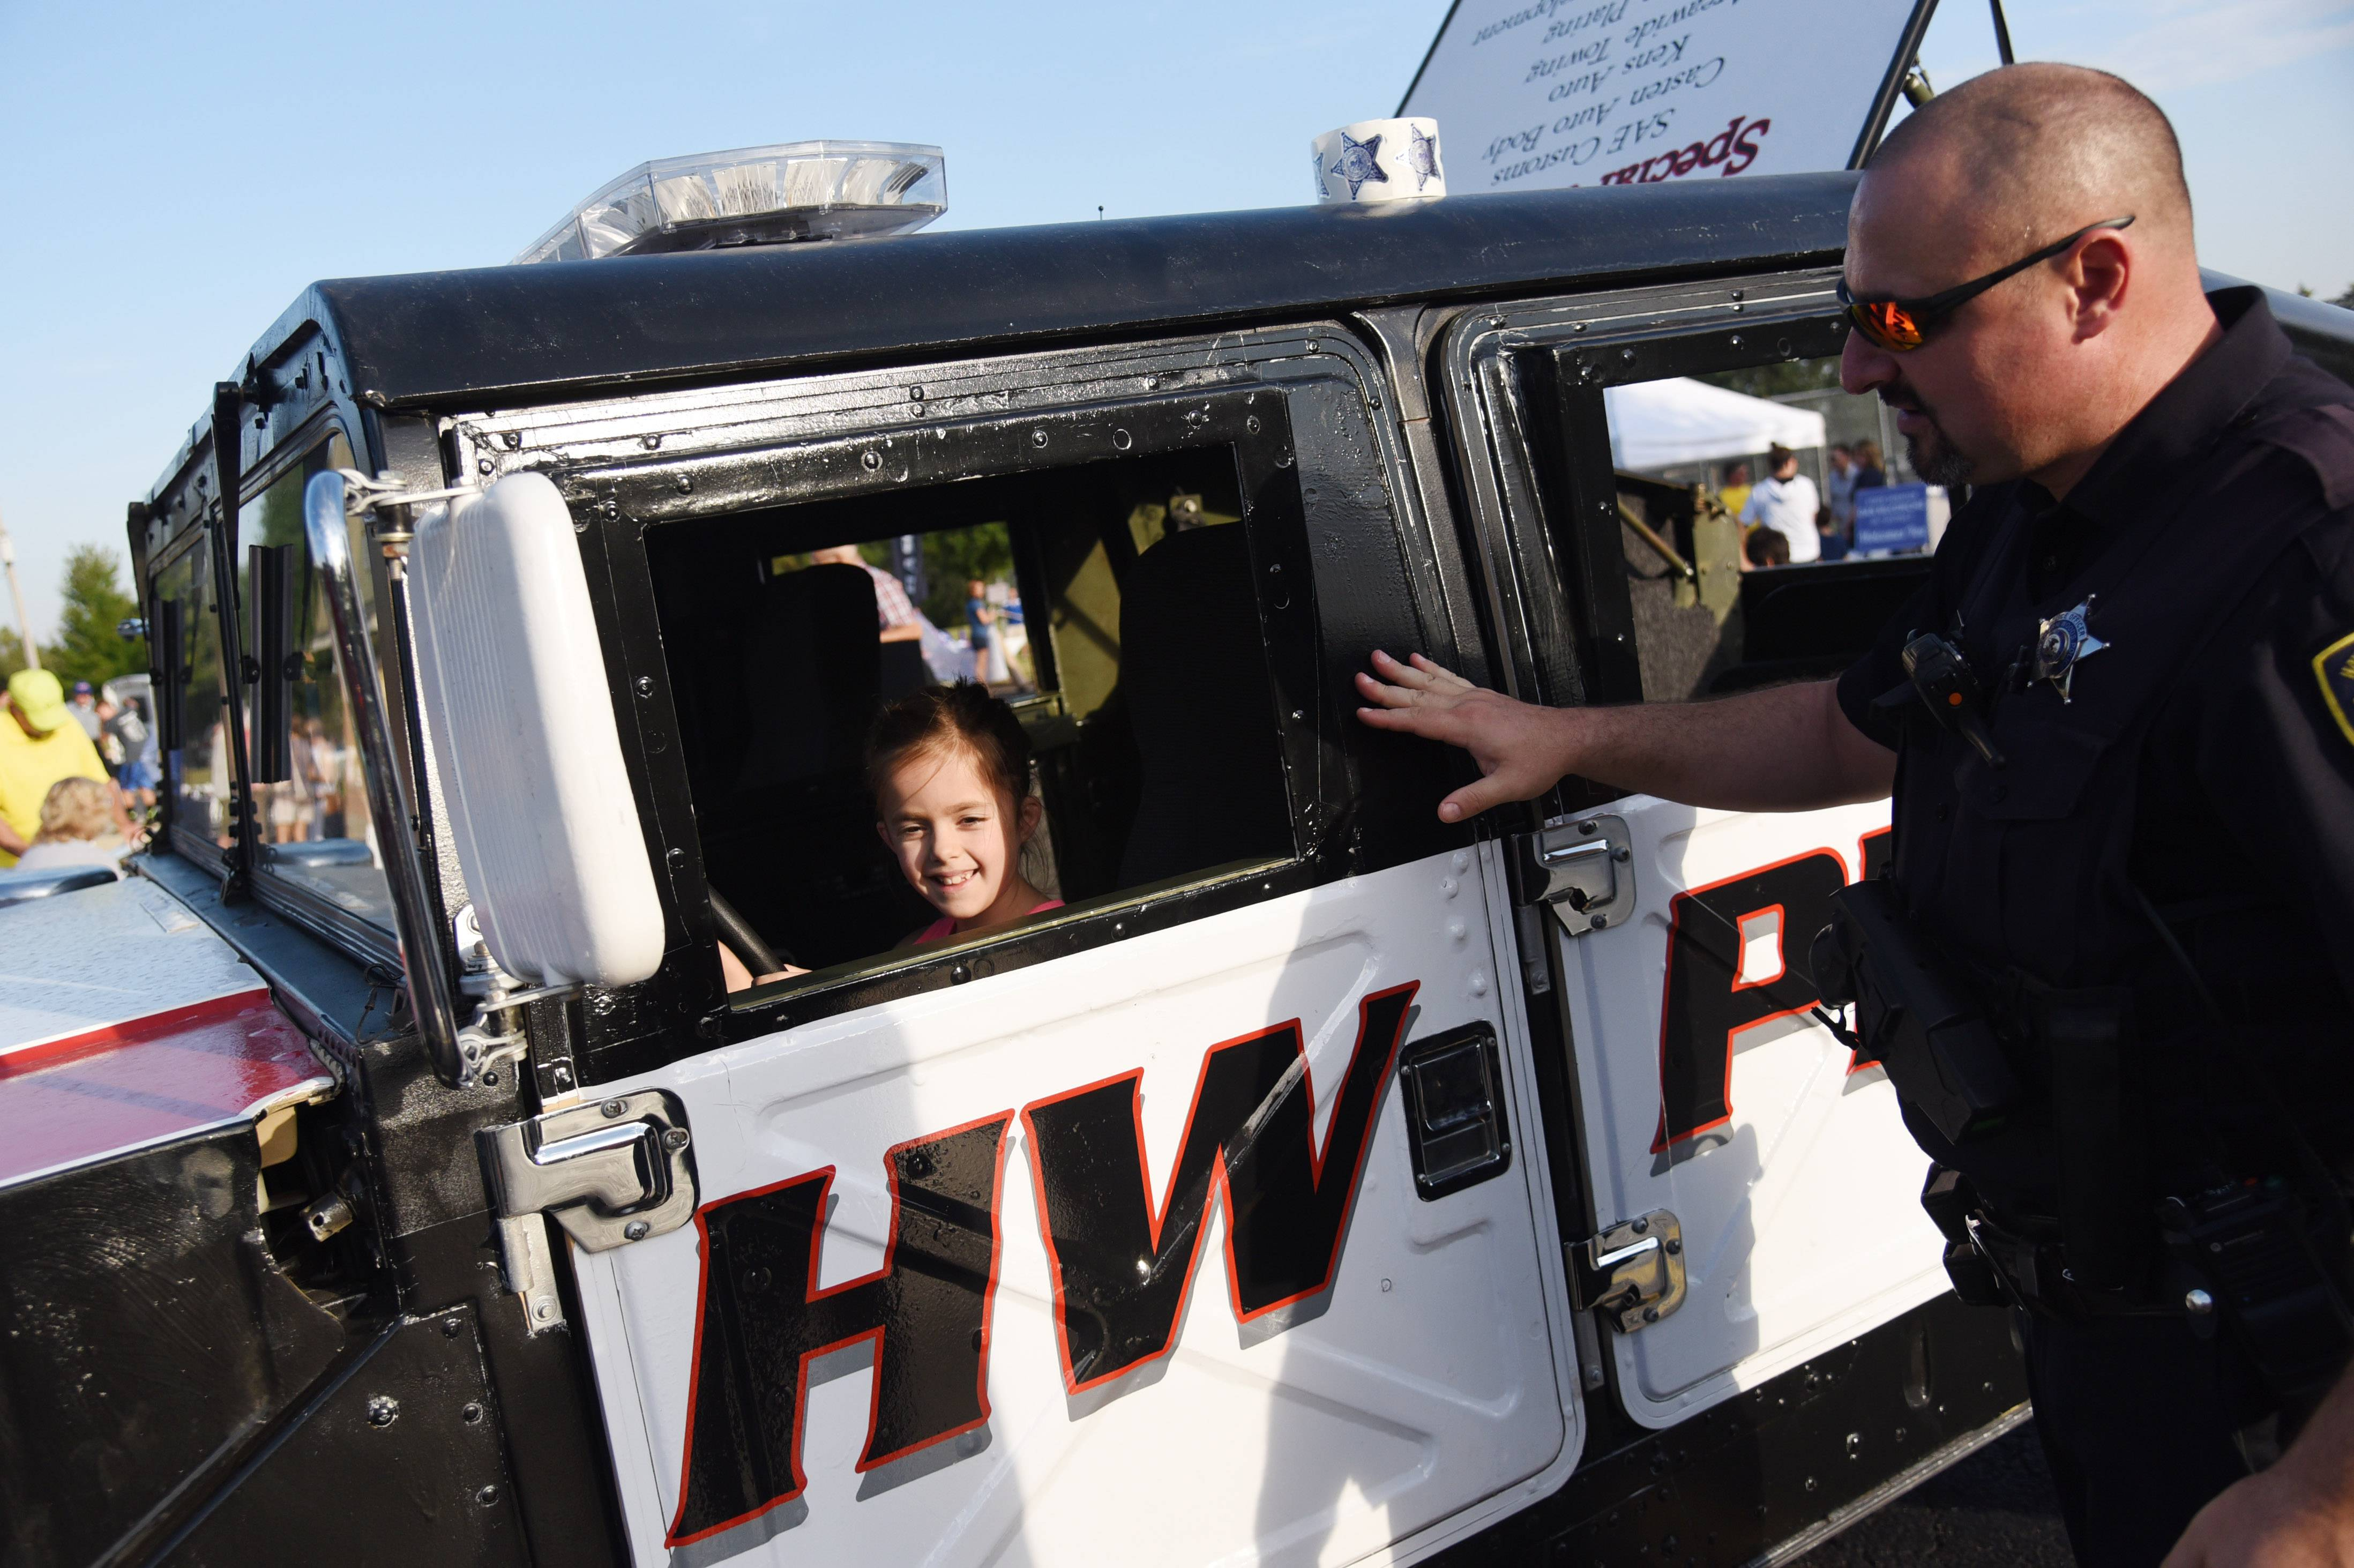 Seven-year-old Ellie Madsen, assisted by officer Mike Rossini, sits in a Hawthorn Woods police vehicle Thursday at Ela Township's second annual Township Day at Knox Park in Lake Zurich.